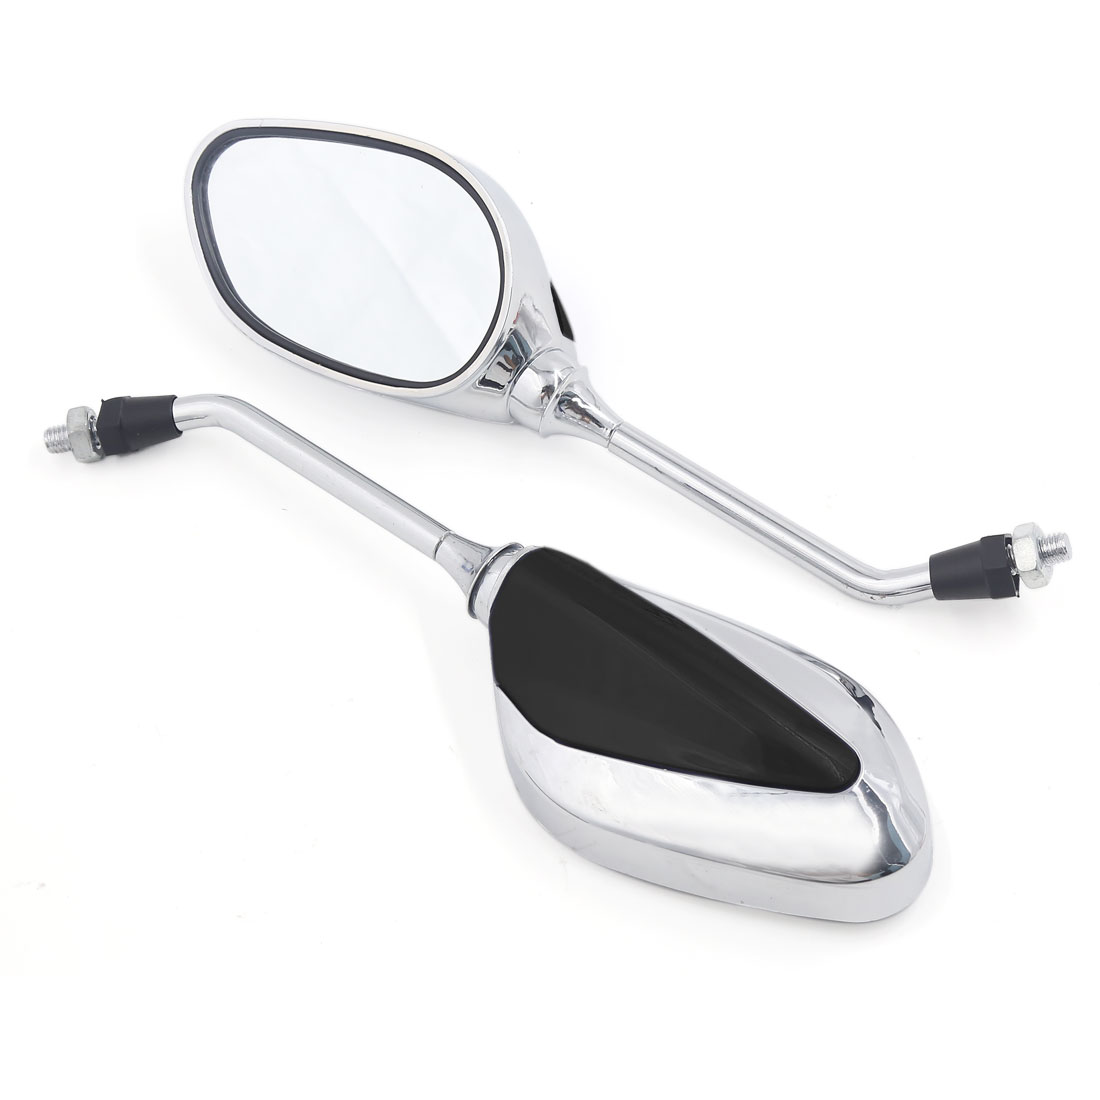 2PCS Black Oval Design Side Rear View Mirror 8mm Thread Dia for Motorcycle Chopper